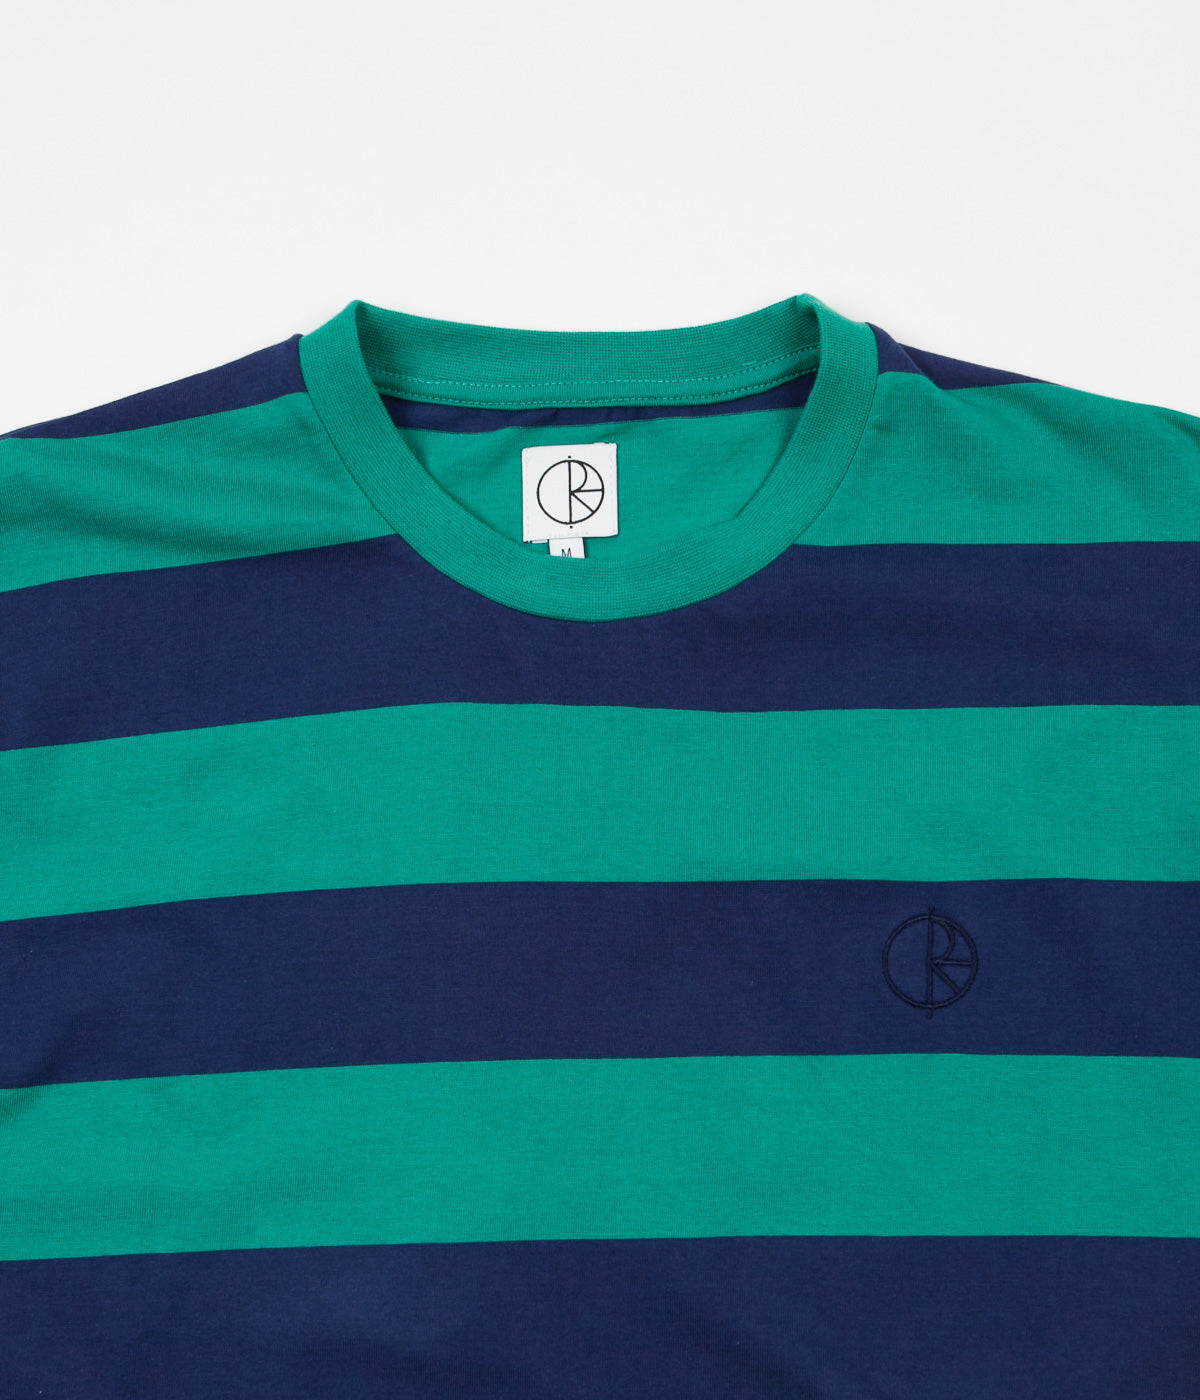 Polar '91 Stripe T-Shirt - Green / Navy